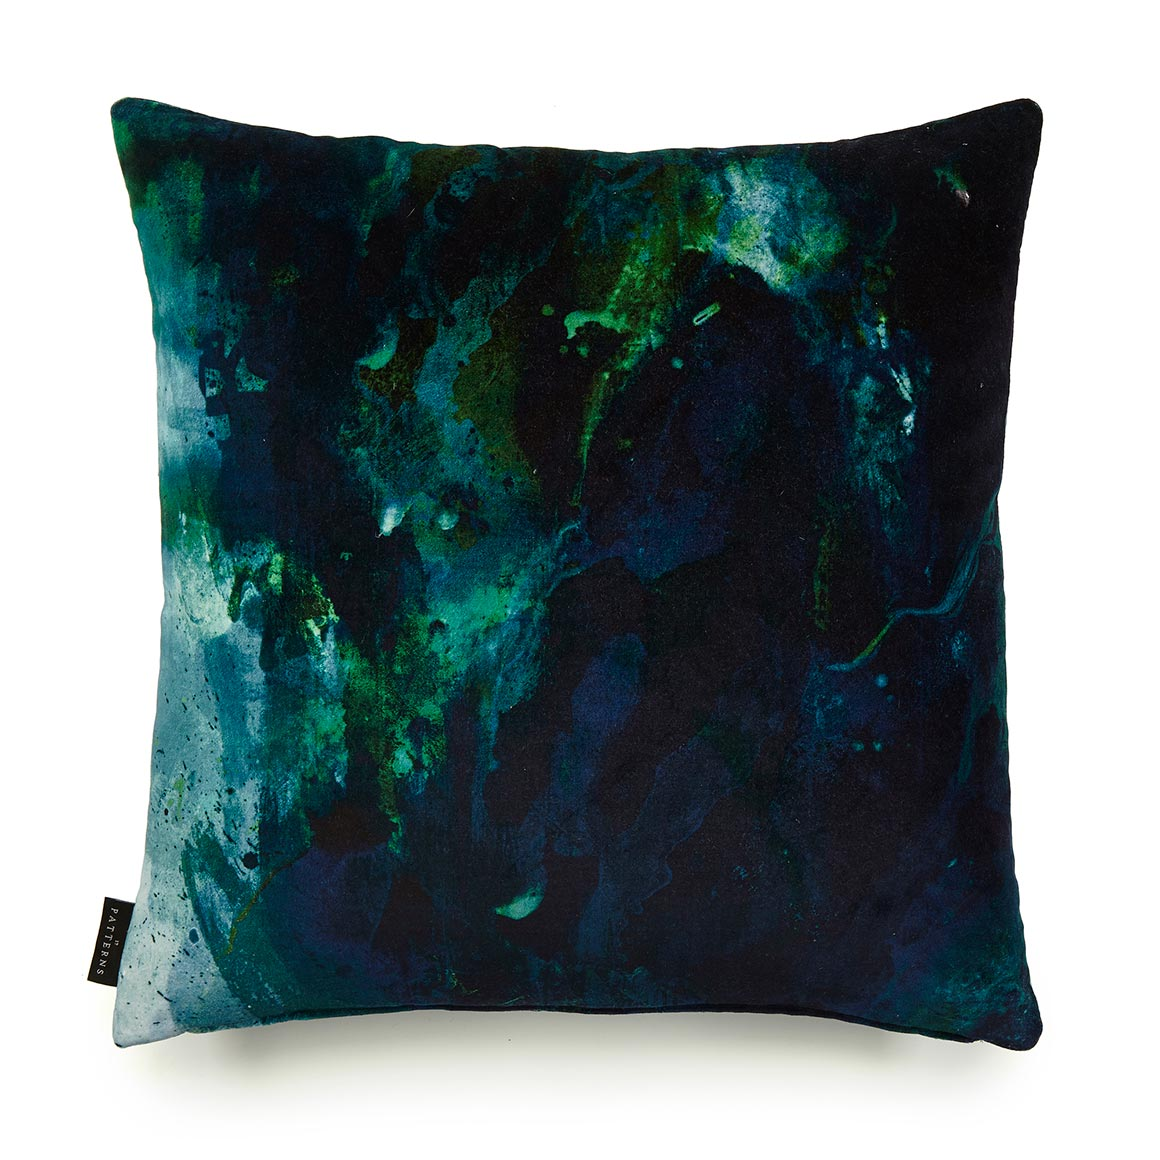 Blue Velvet Cushion Beyond Nebulous Green And Blue Cotton Velvet Cushion